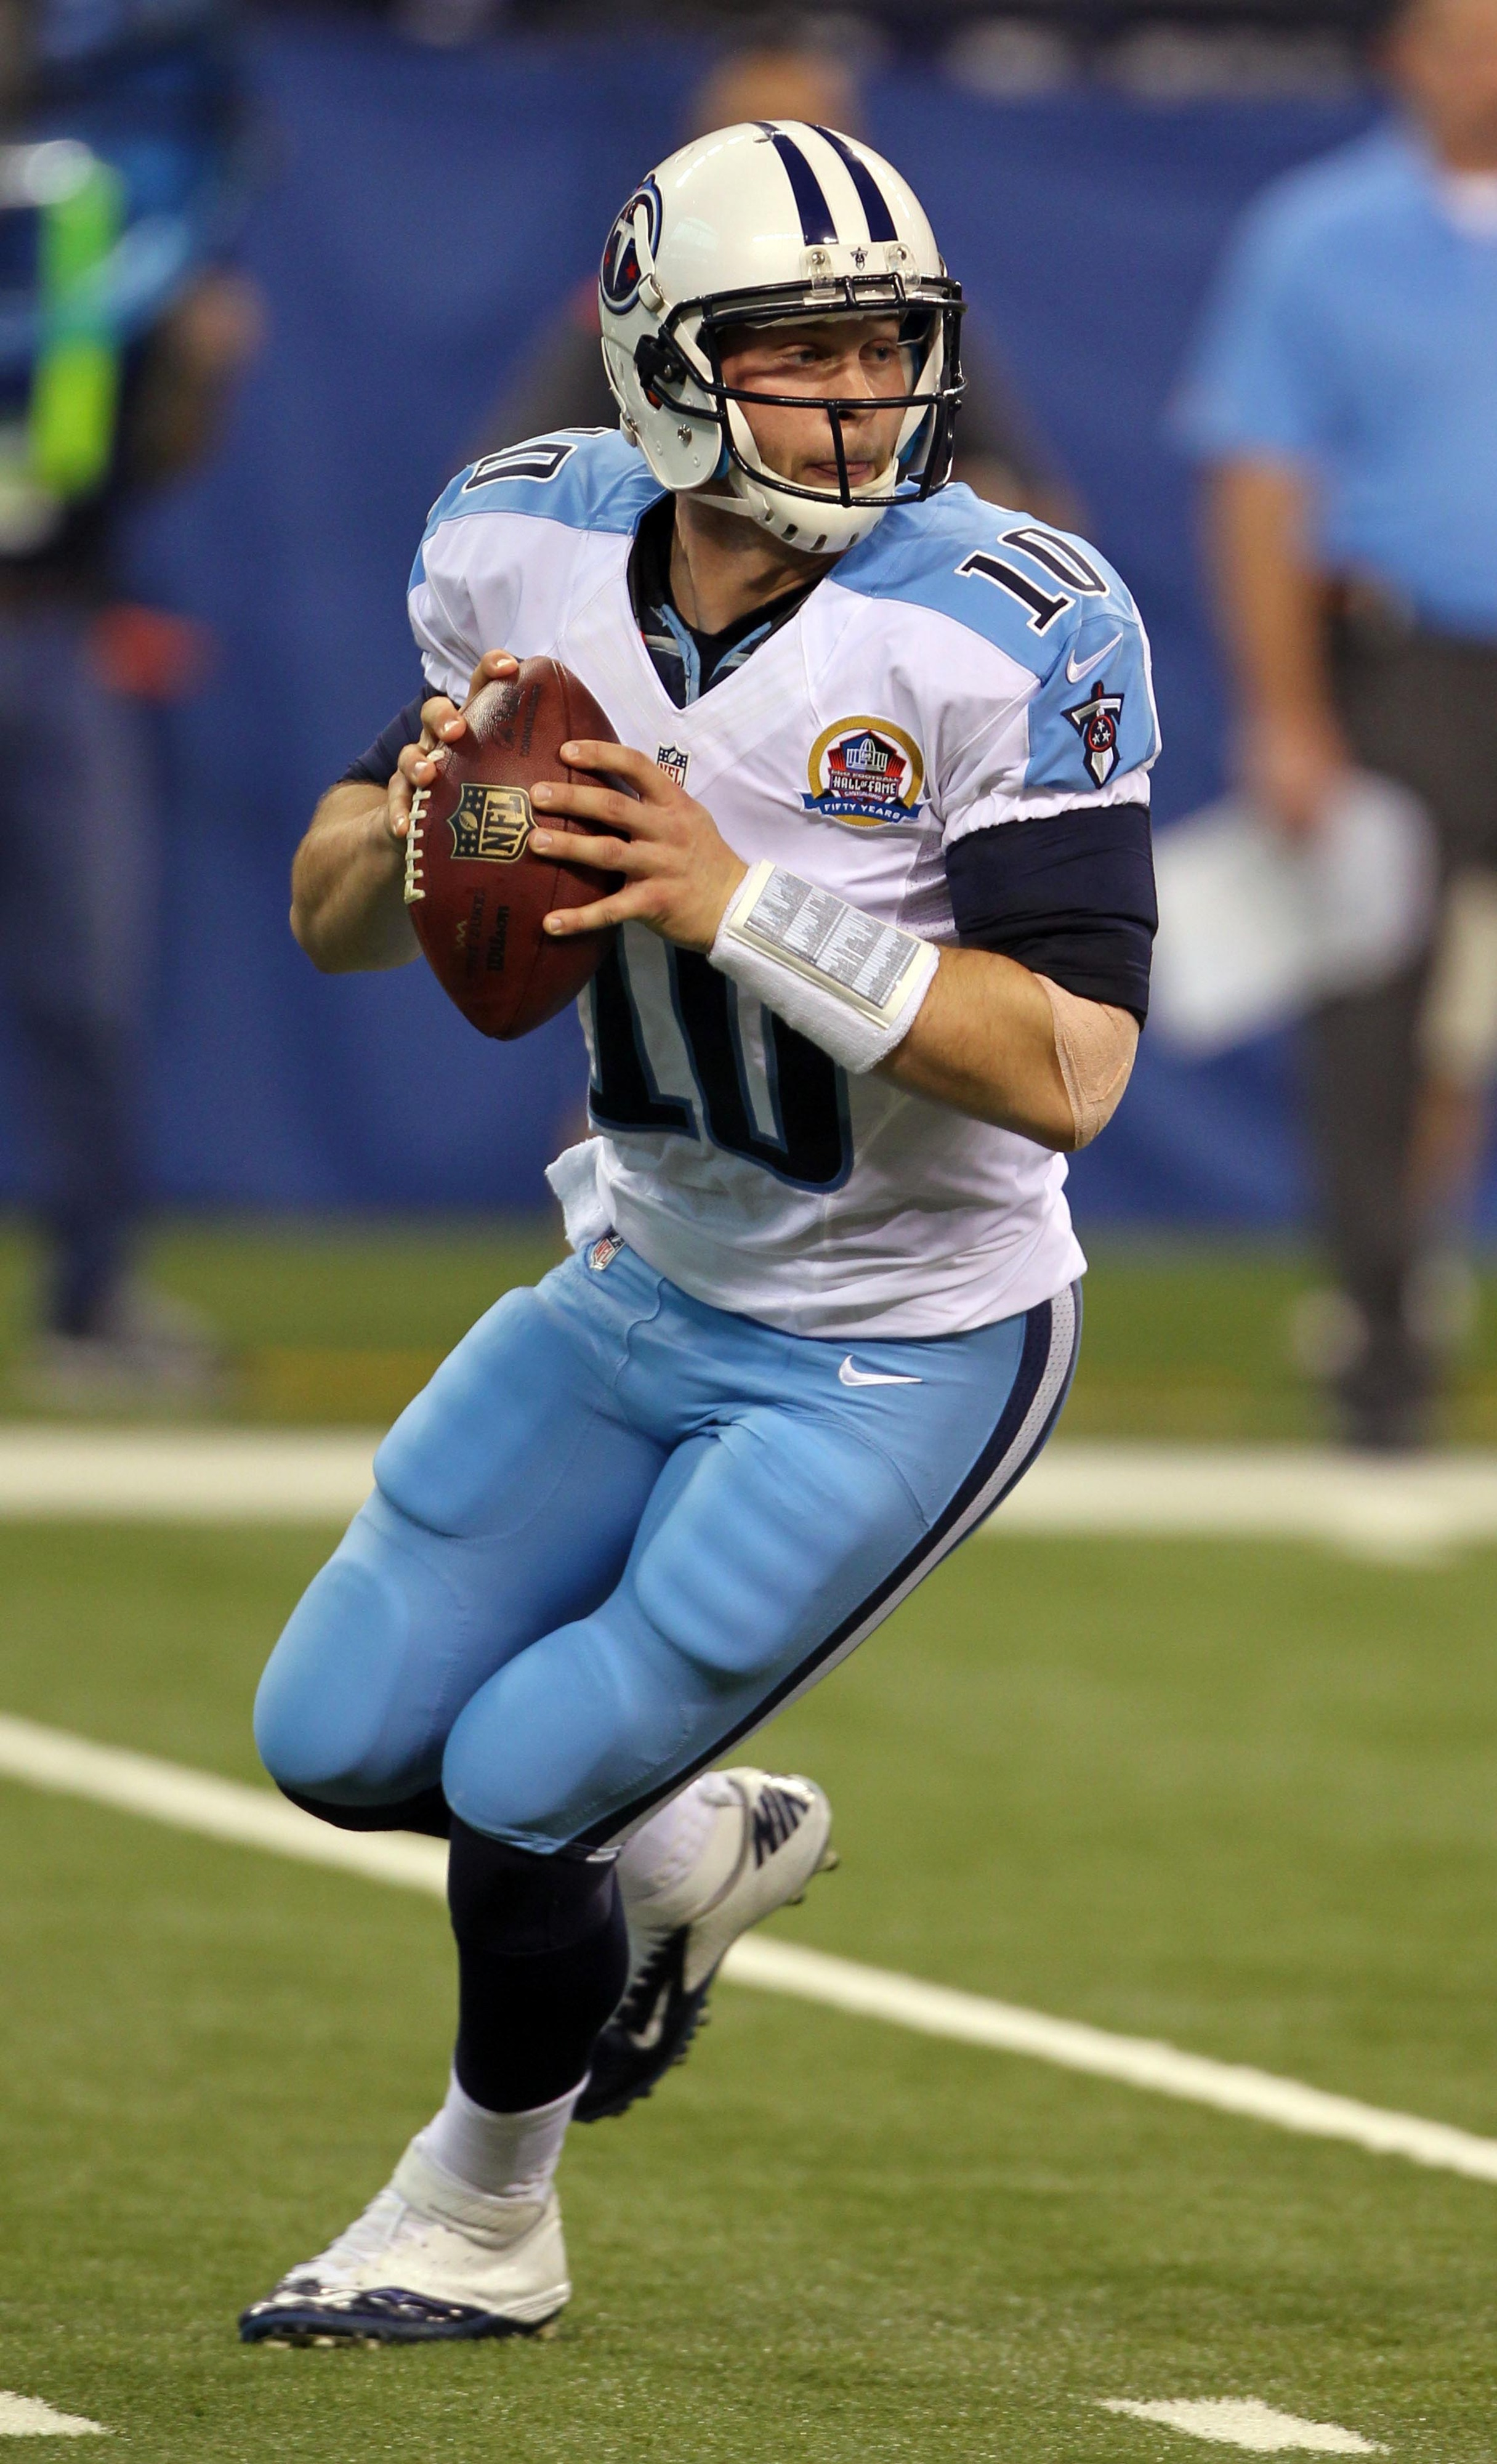 Jake Locker injury: Titans QB unlikely to play against 49ers